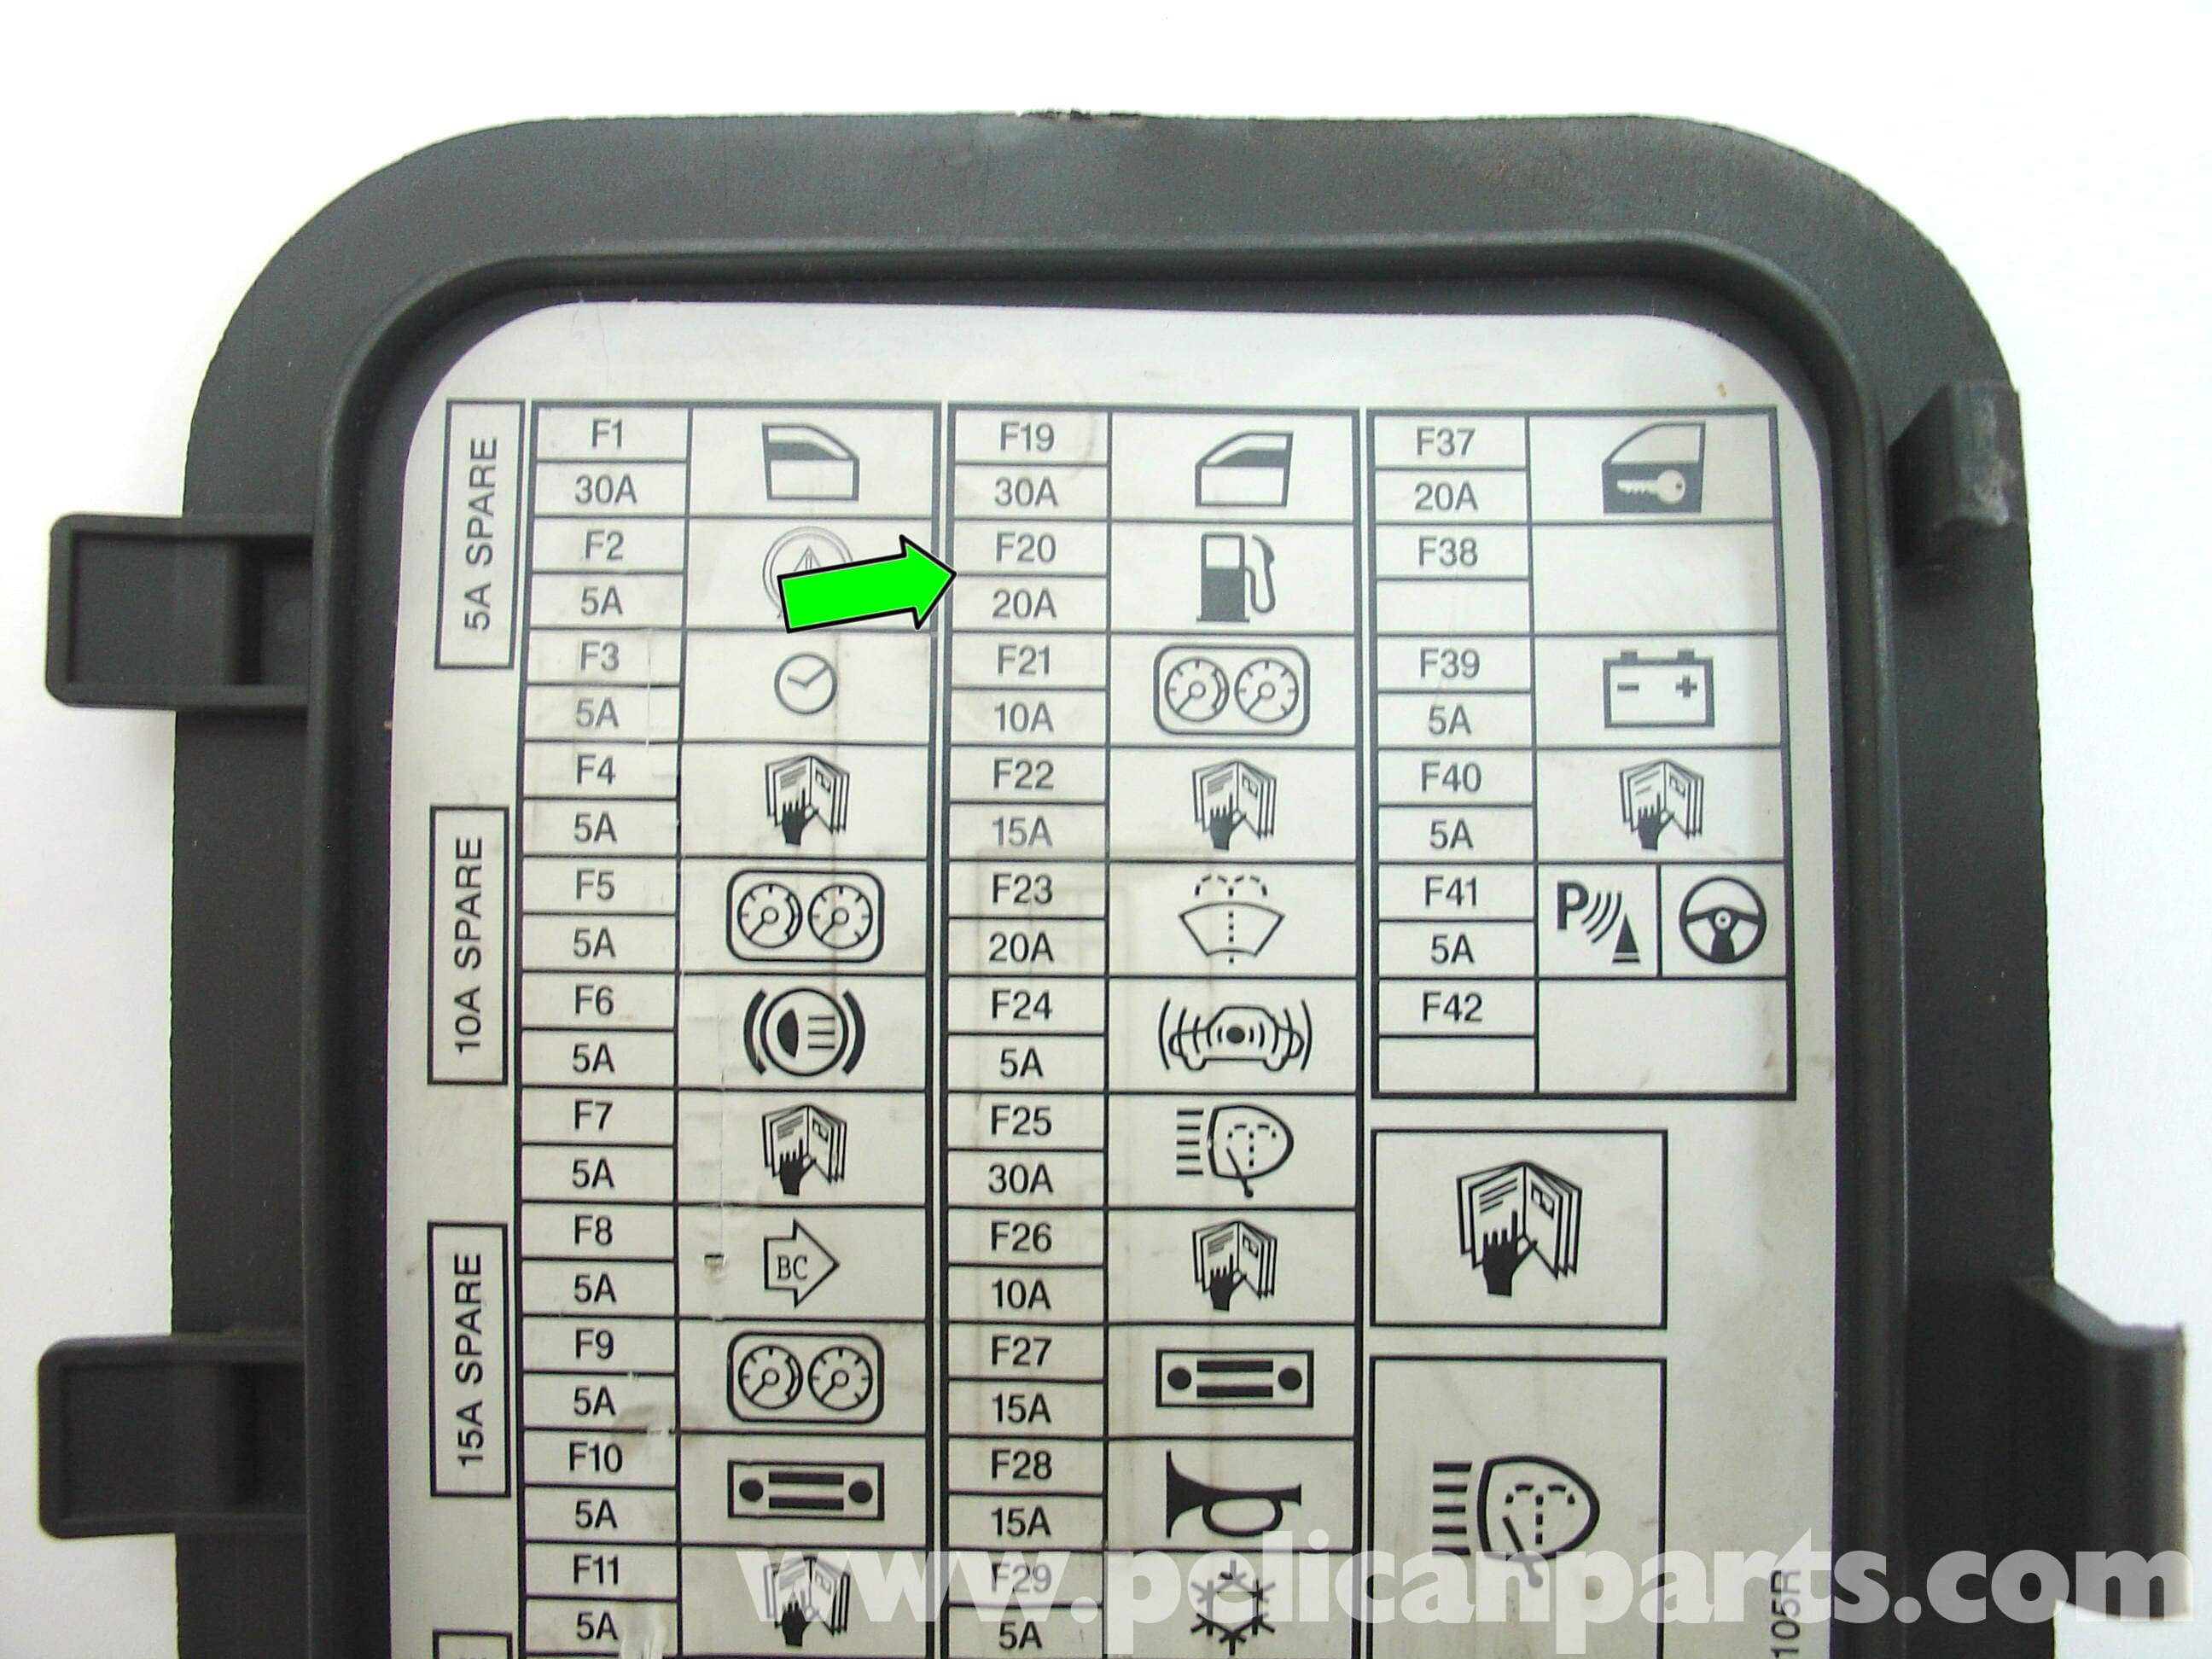 2007 Mini Cooper Fuse Diagram Simple Wiring Diagram 2011 Mitsubishi  Outlander Sport Wiring Diagram 2011 Mini Cooper Wiring Diagram